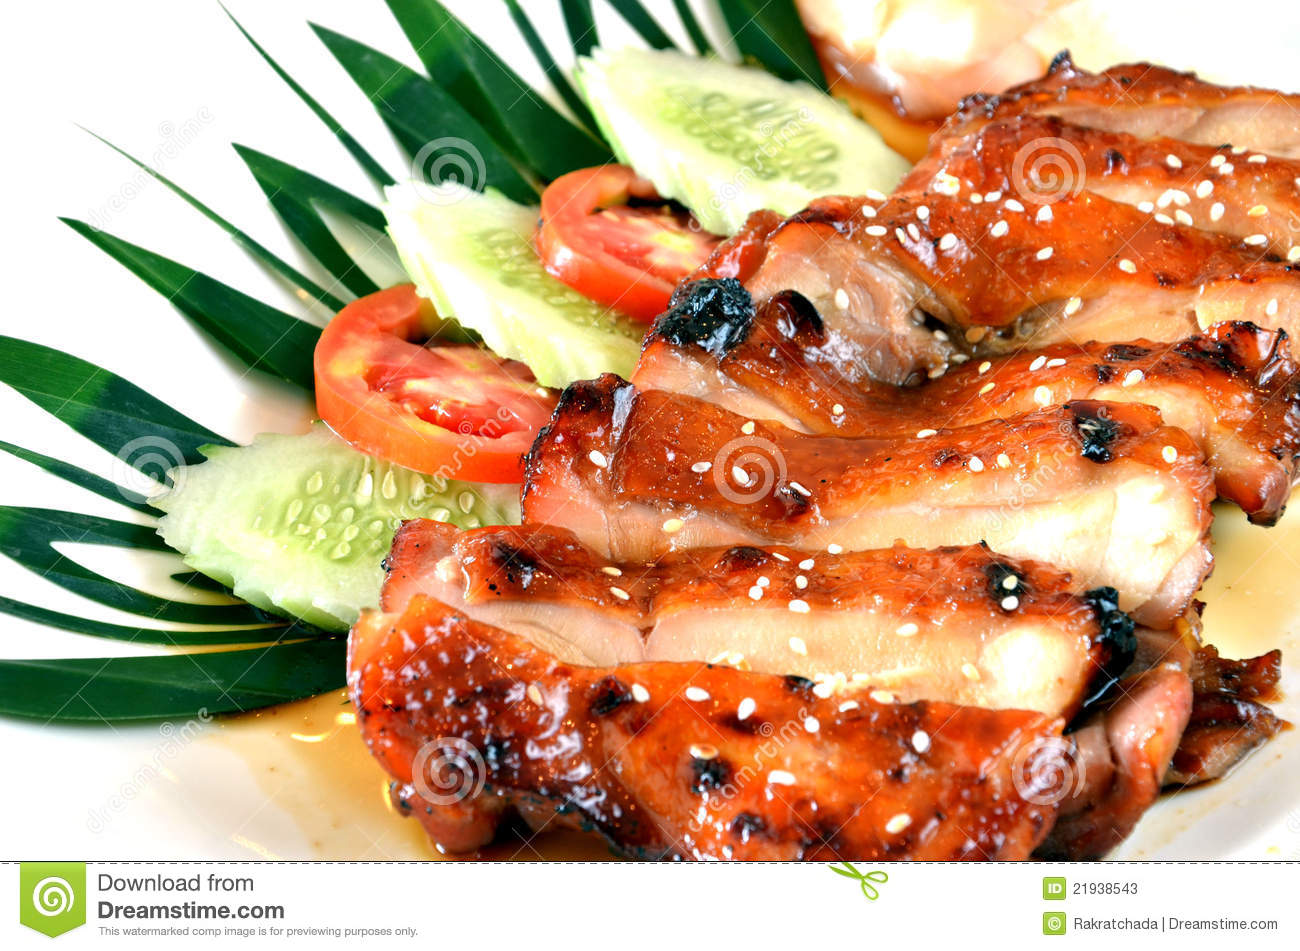 panini grilled vegetable panini chicken teriyaki chicken teriyaki ...